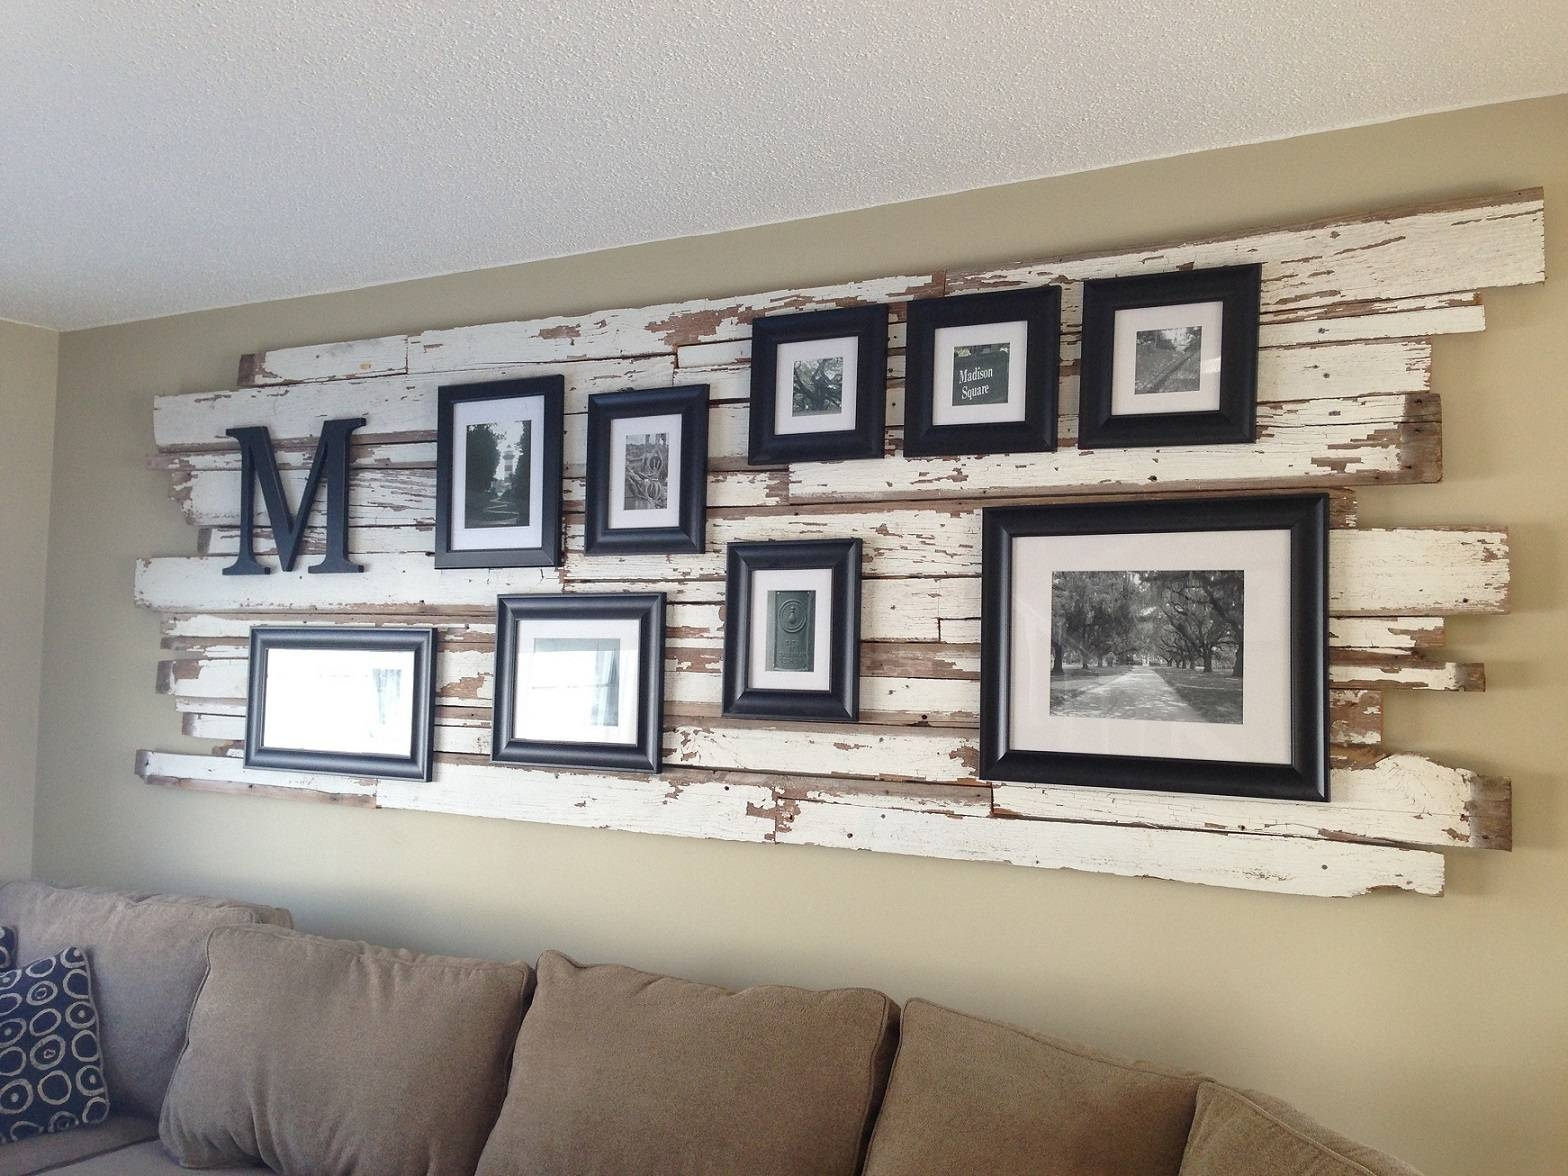 Unique Pallet Wall Art Ideas And Designs – Gallery | Gallery For Most Up To Date Large Unique Wall Art (View 4 of 20)